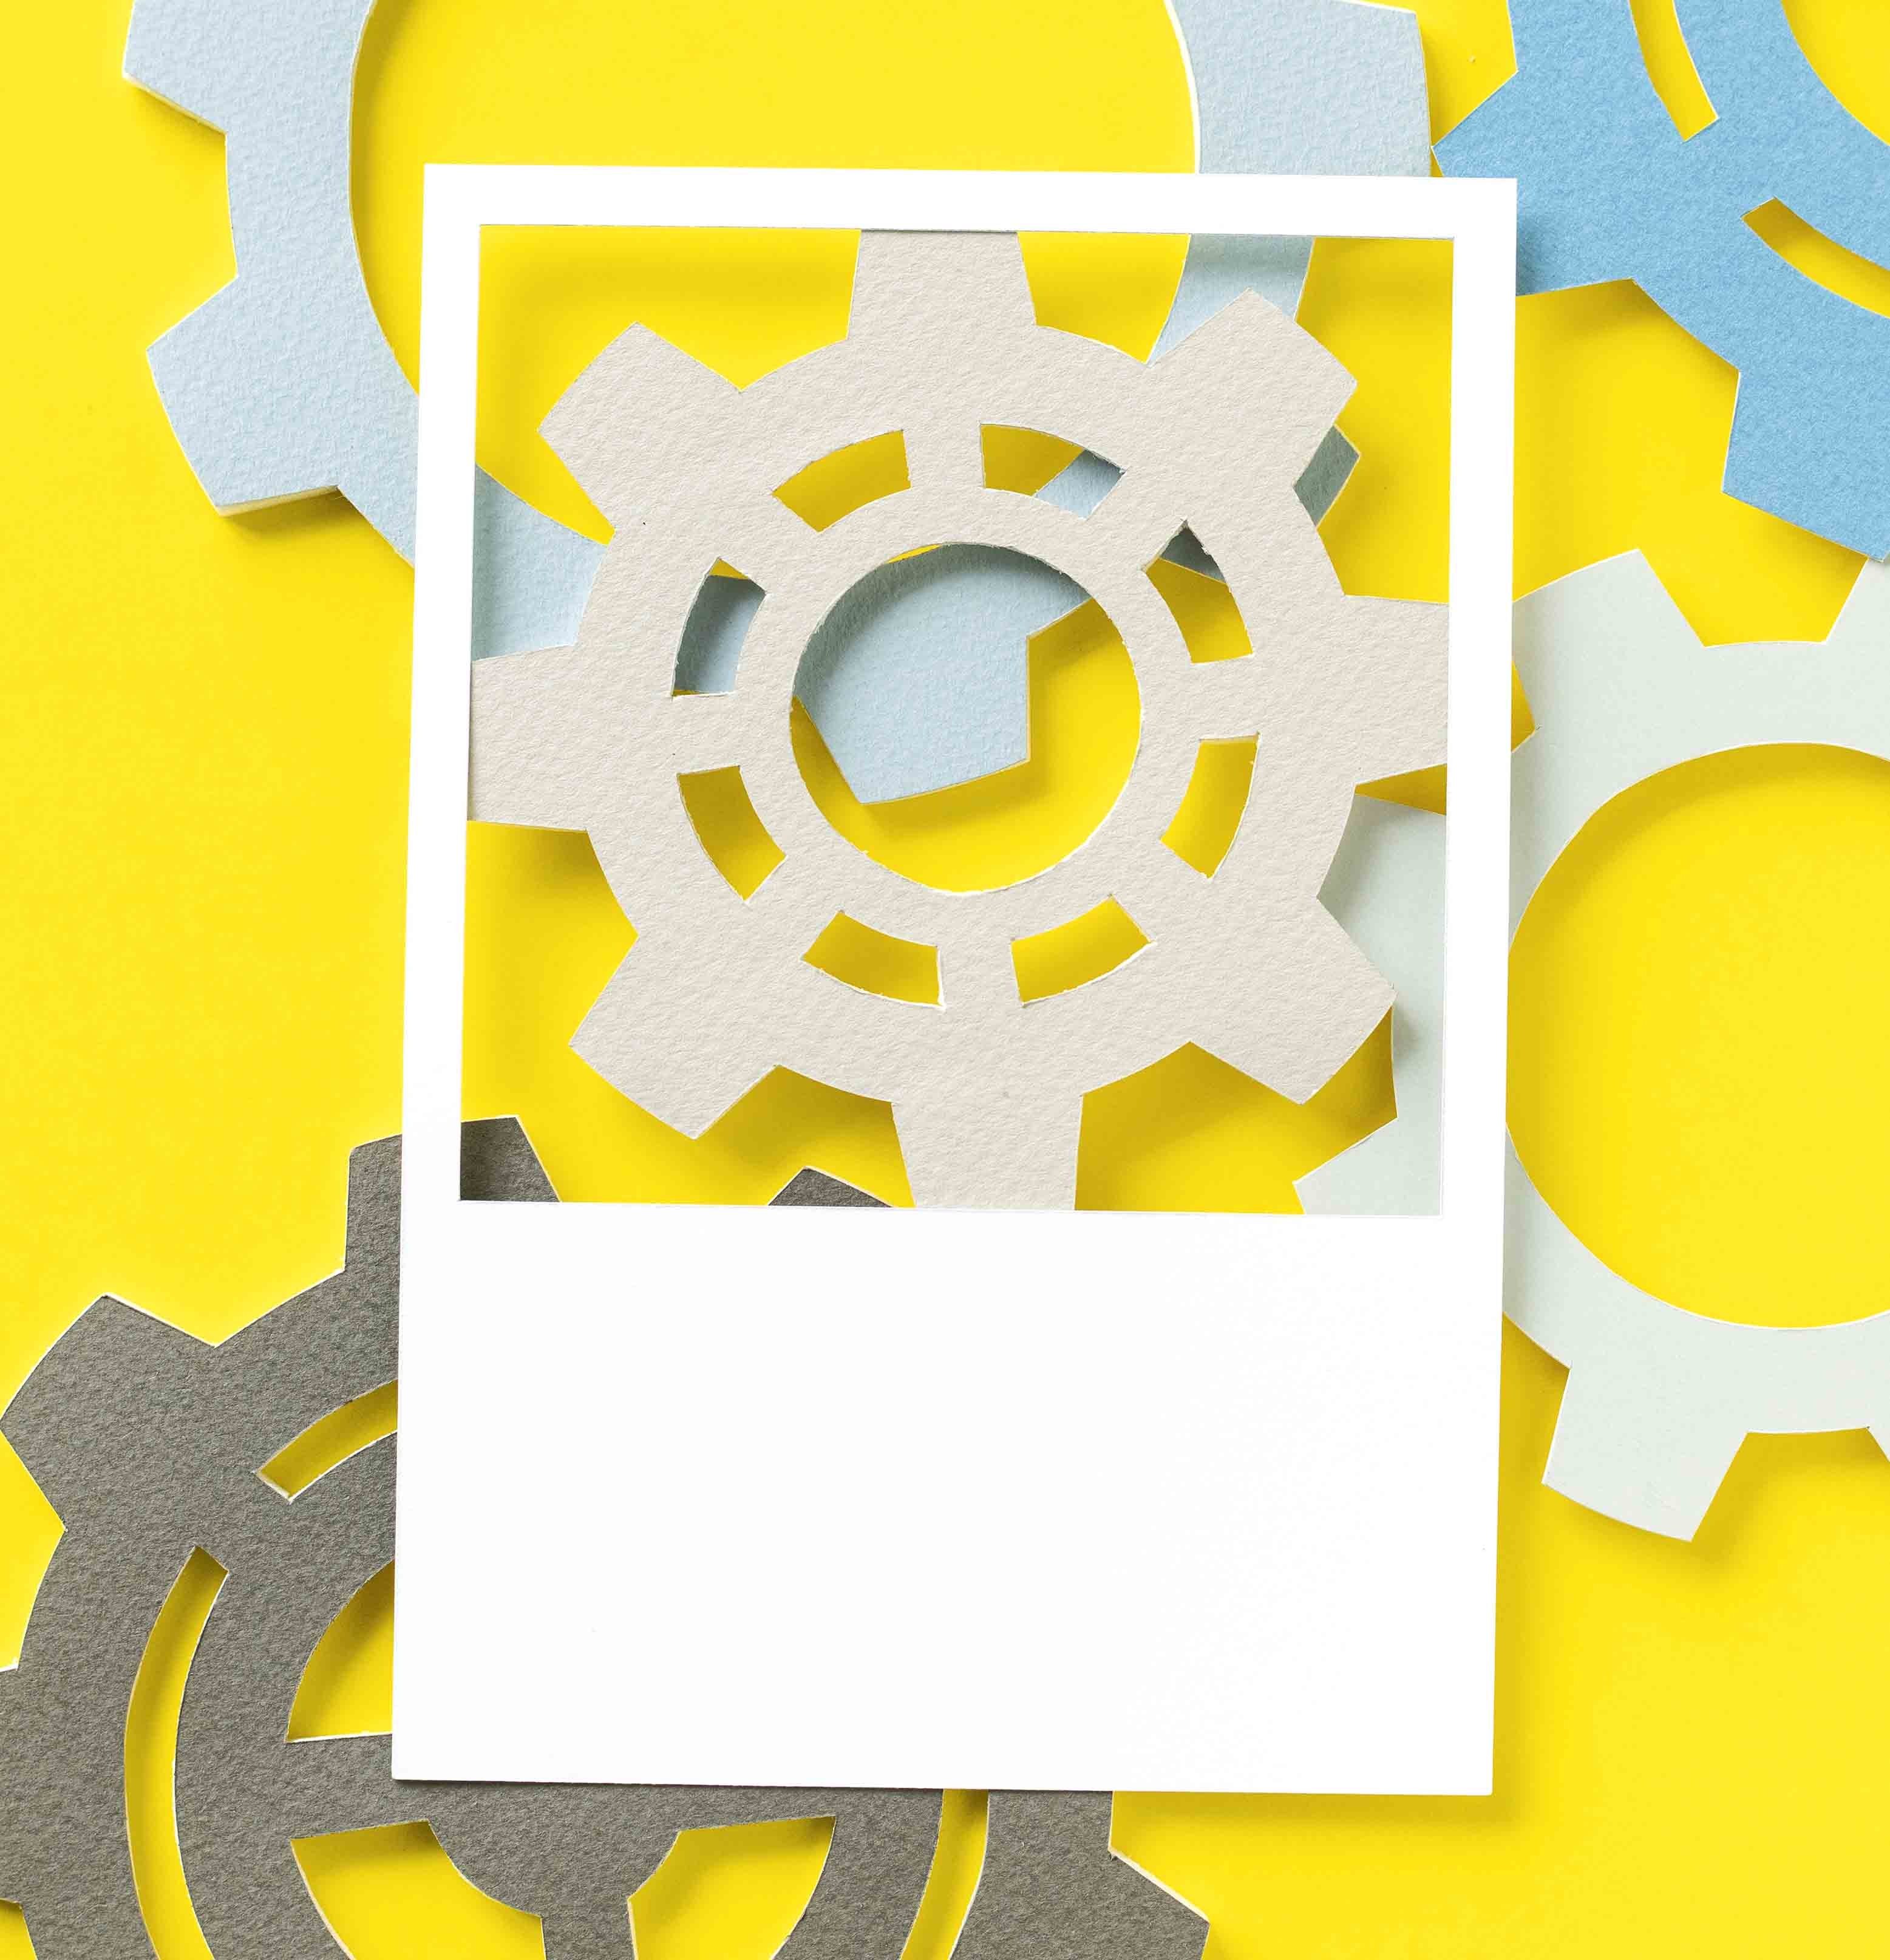 A collection of illustrated gears on a yellow background